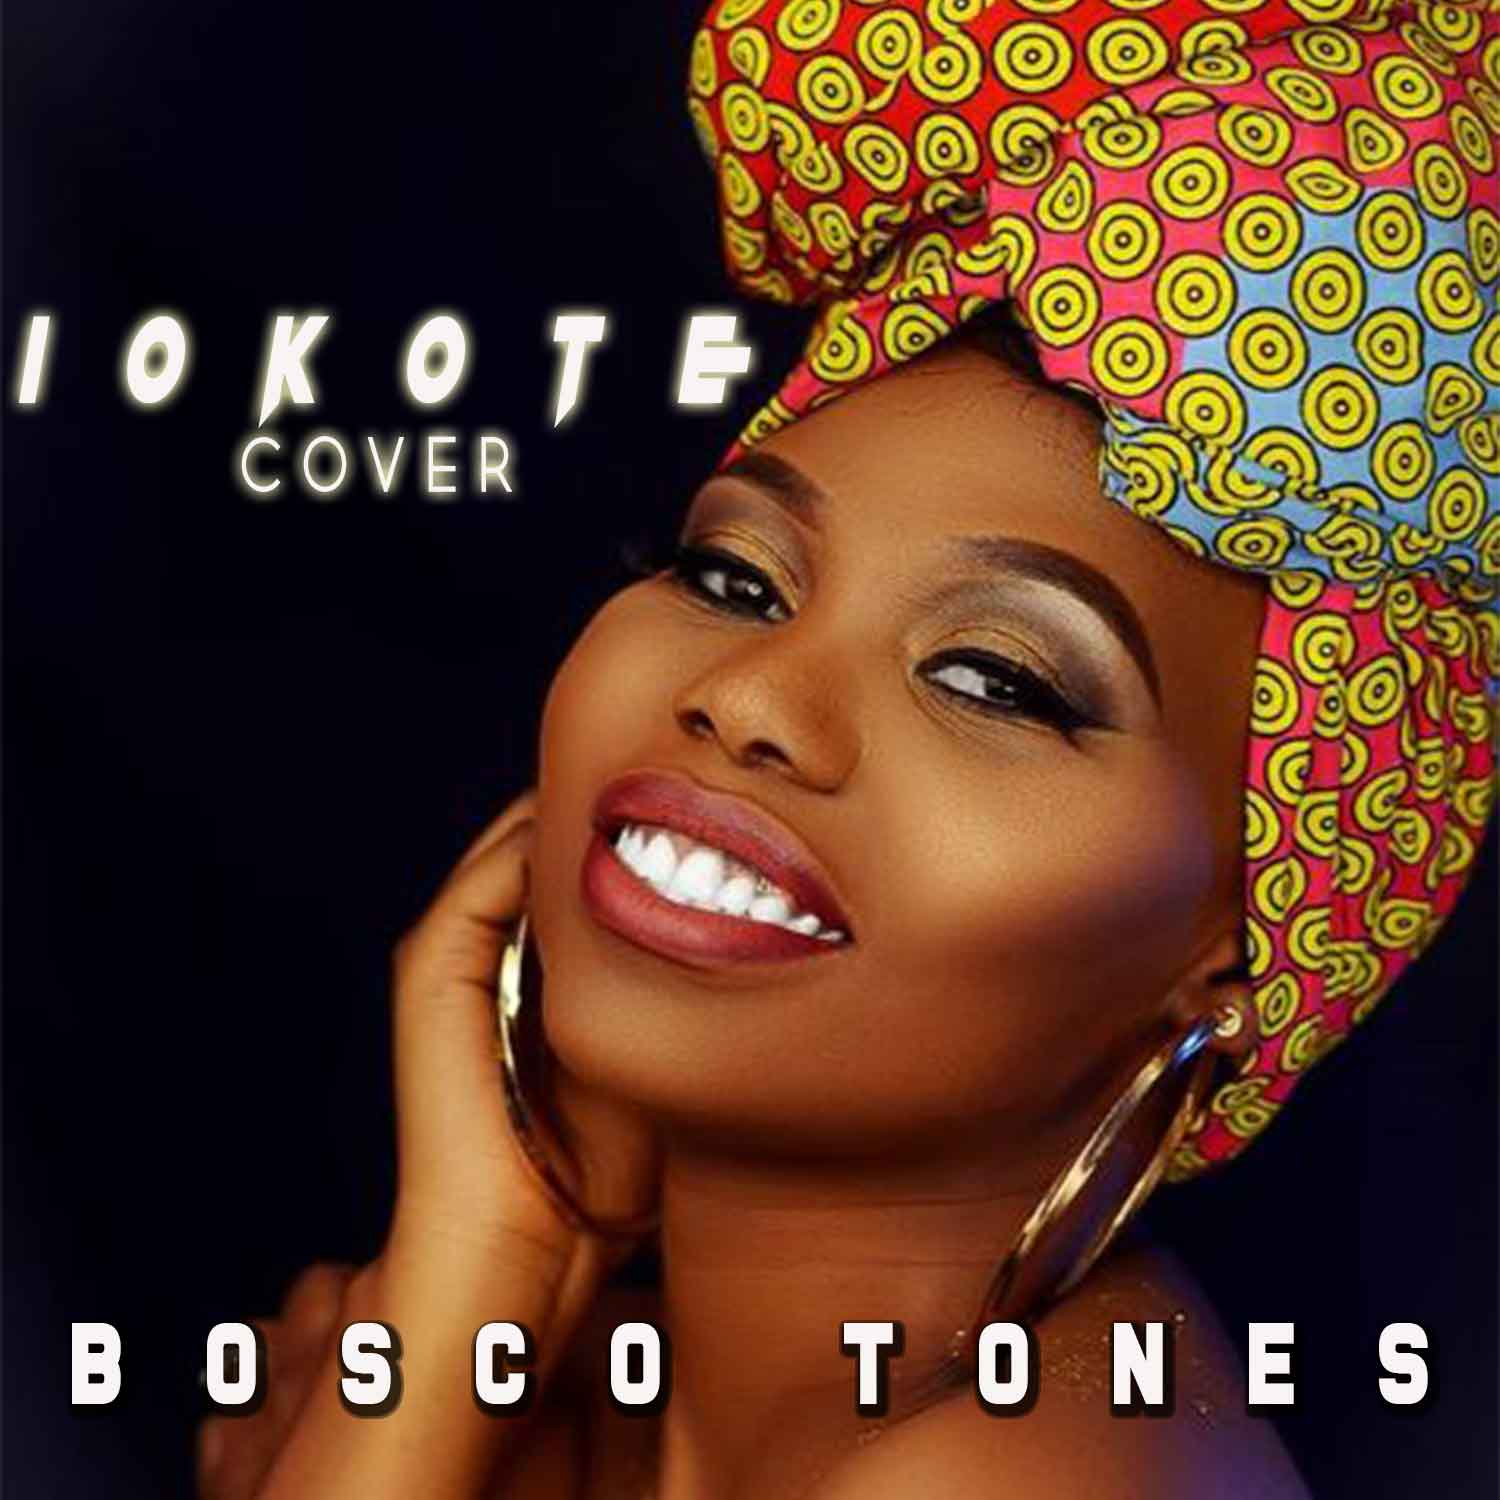 Photo of New AUDIO & VIDEO: Bosco Tones – Iokote Cover